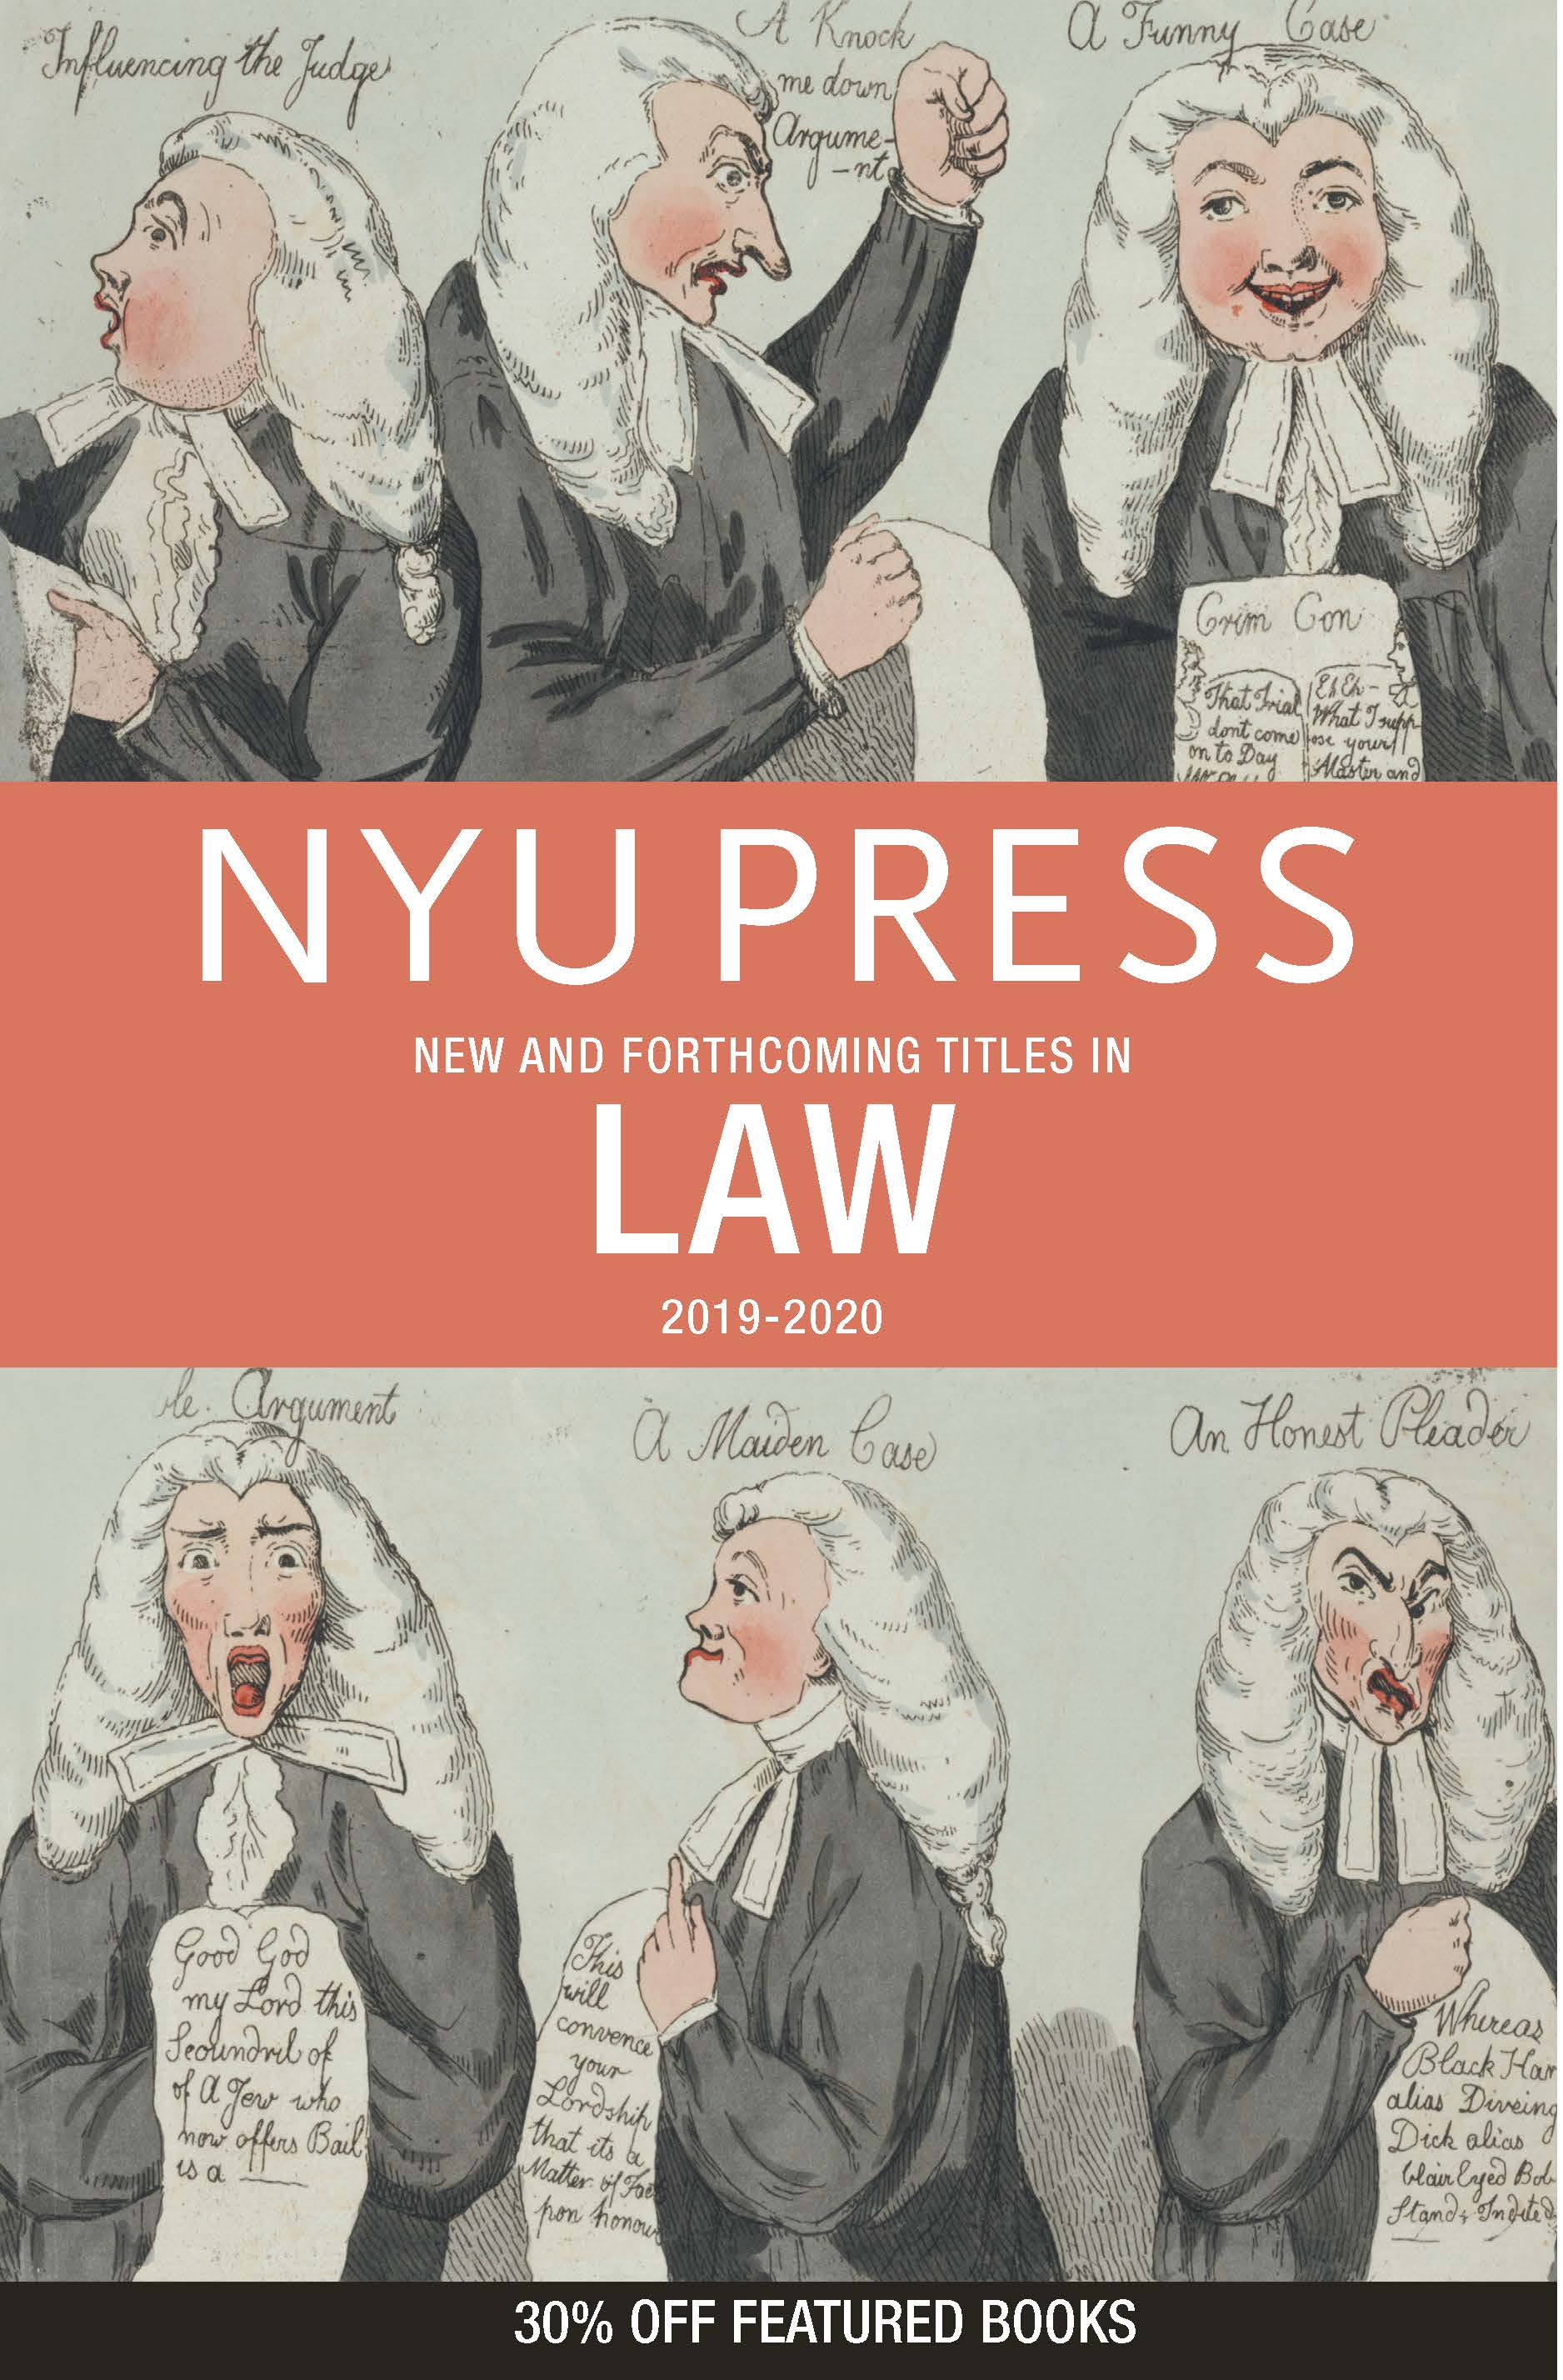 Law 2019-2020 subject catalog cover